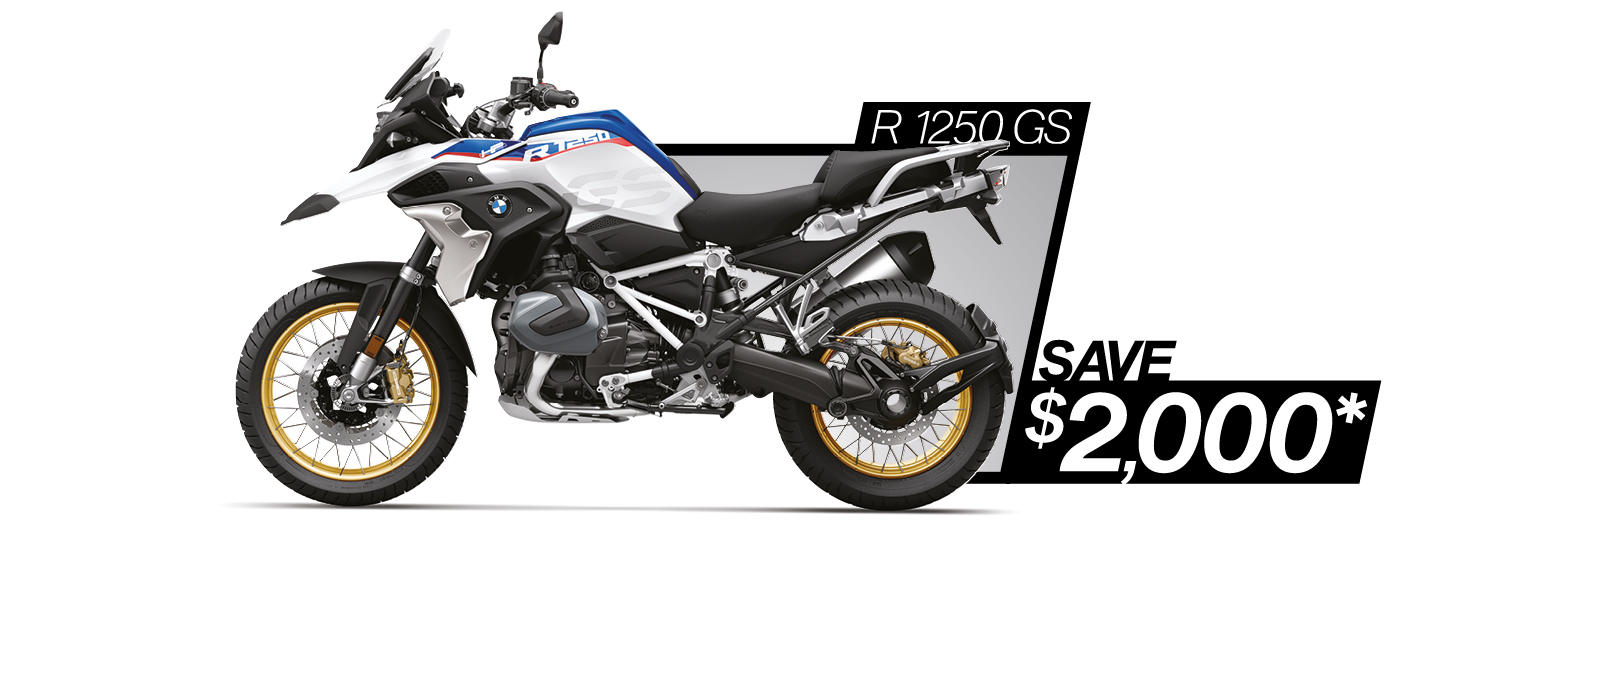 R 1250 GS on sale